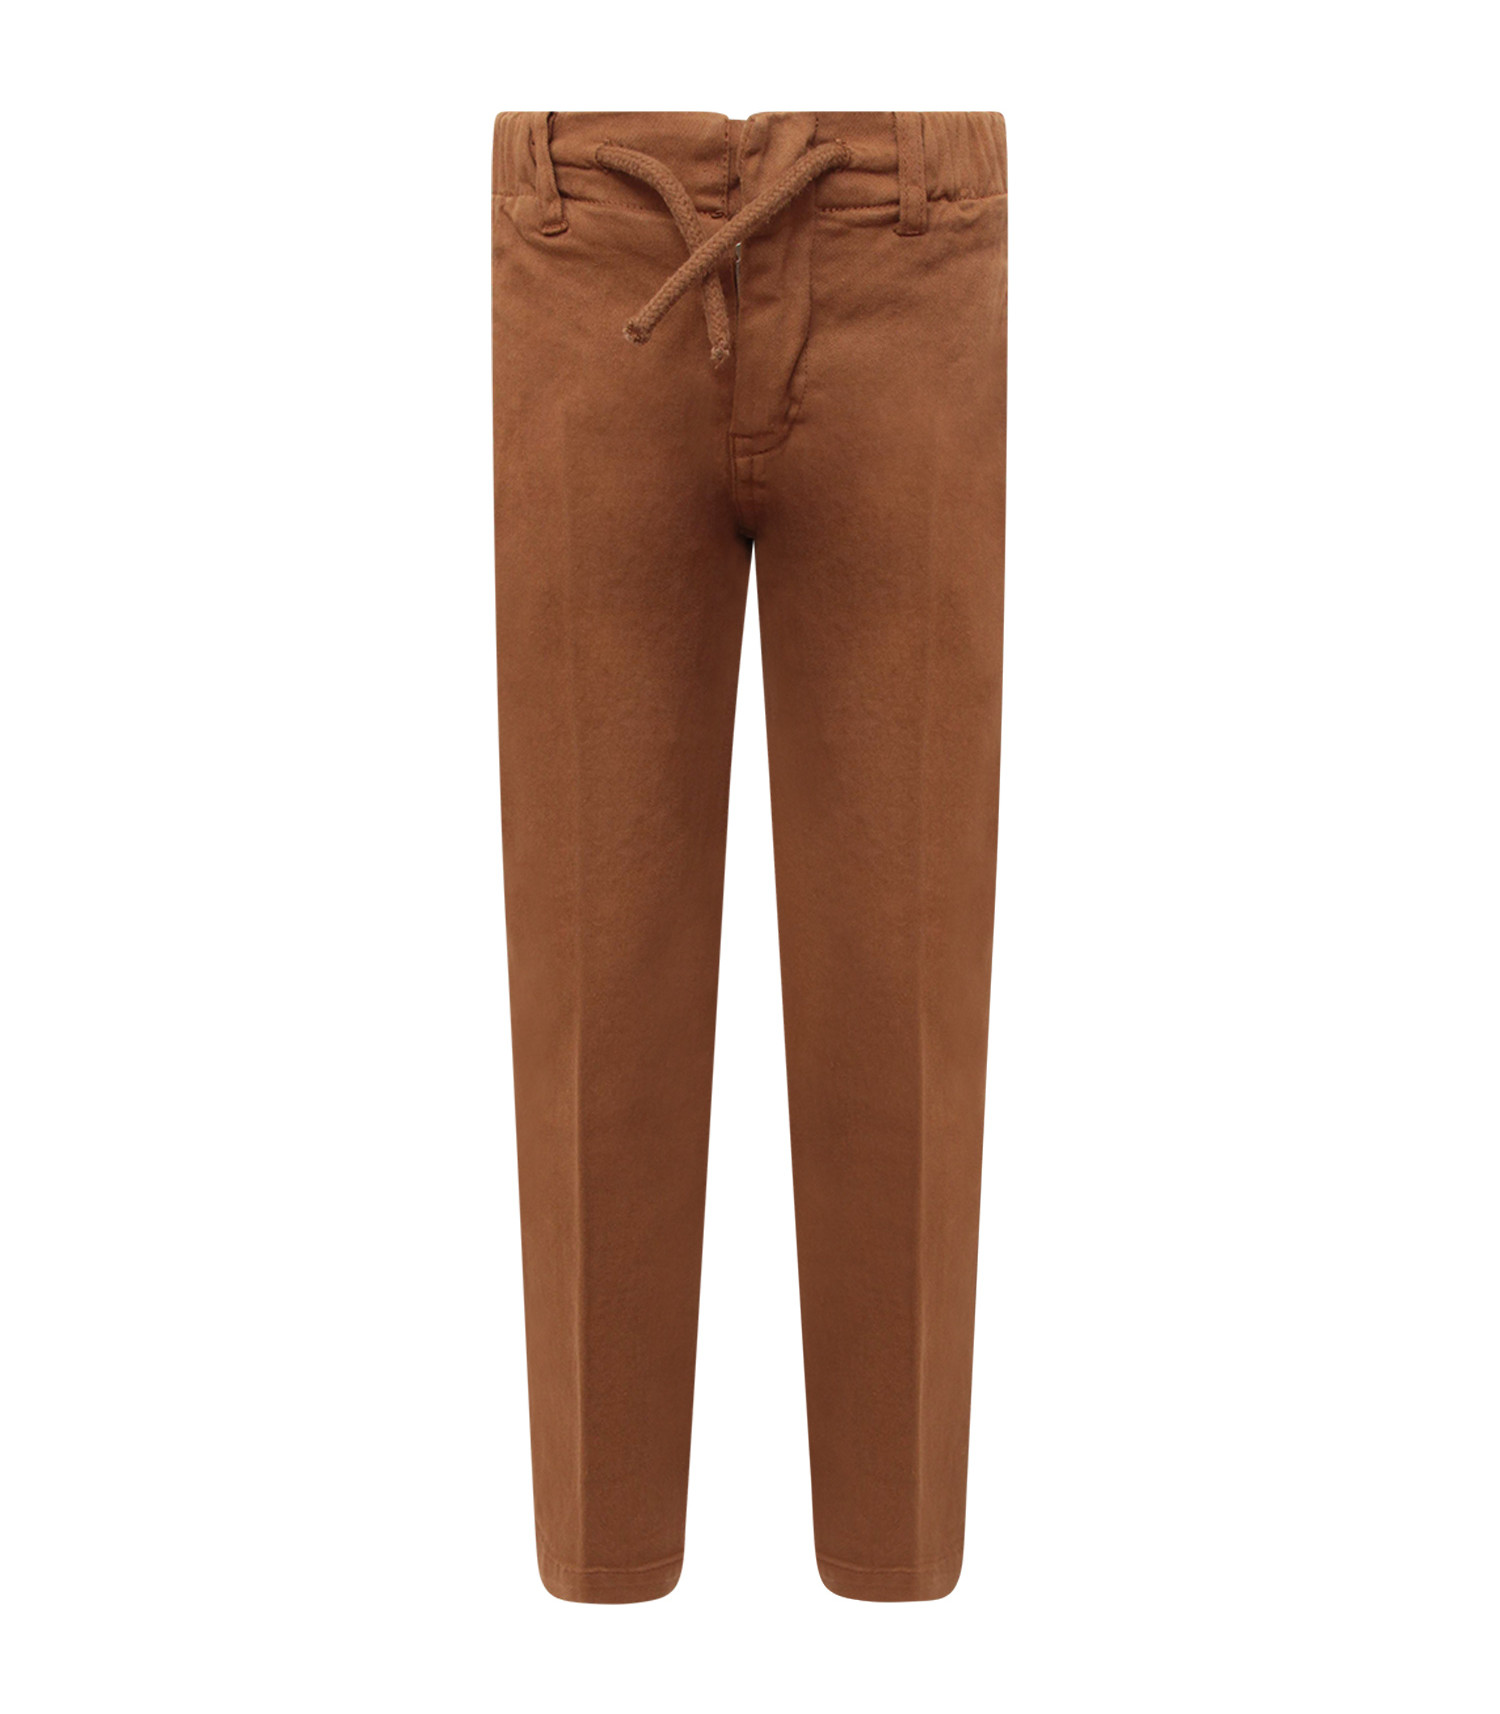 Dondup Kids Camel boy pants with iconic D